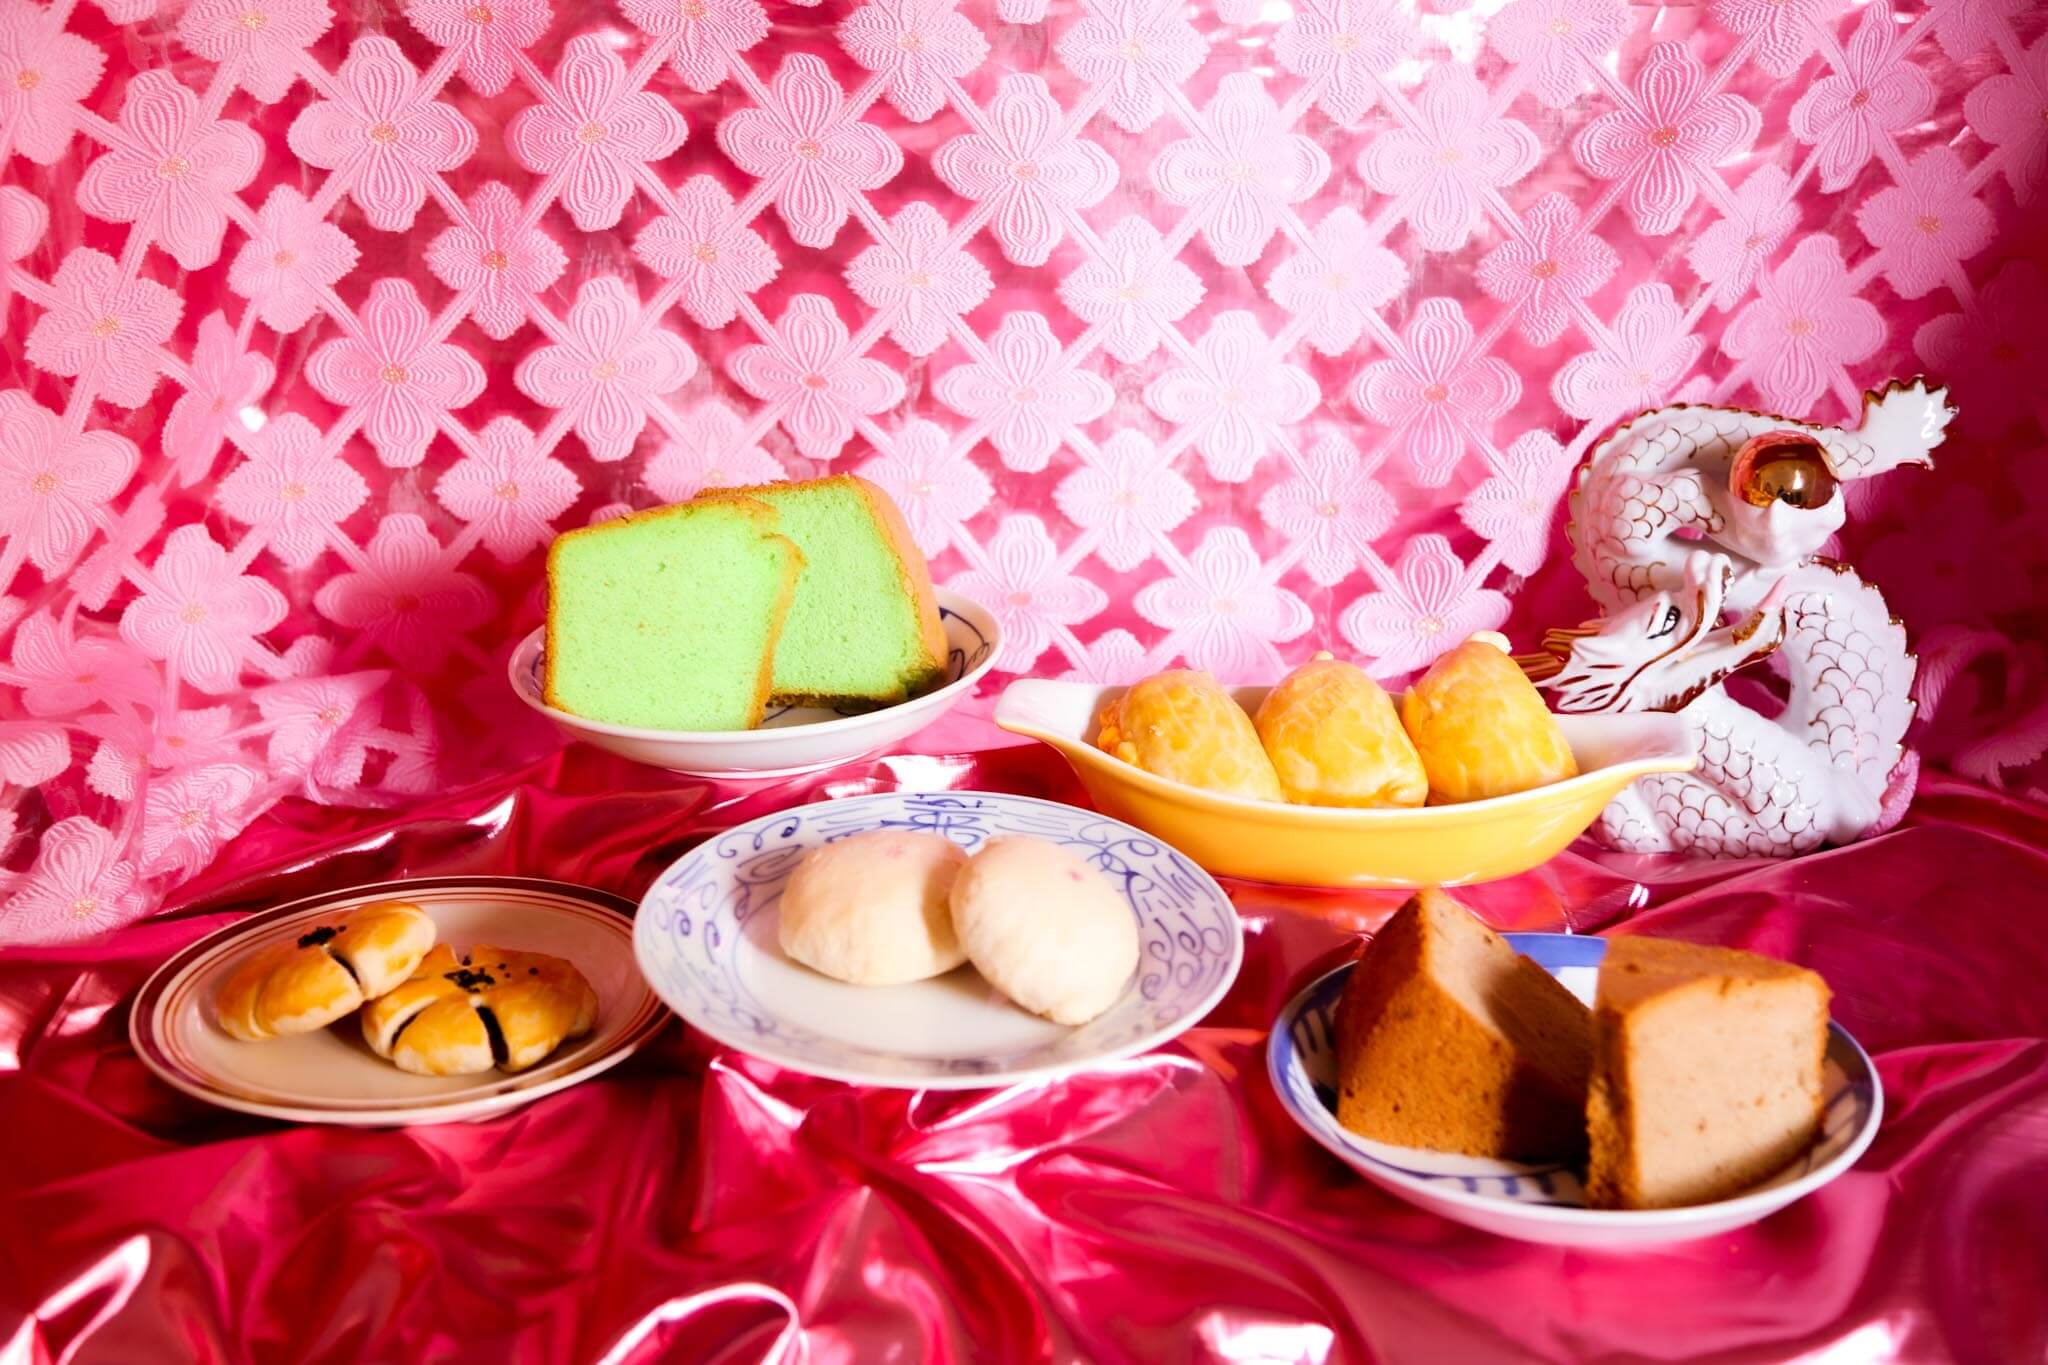 Image of variety of Chinese-Malaysian pastries beautifully plated with a bright pink cloth background